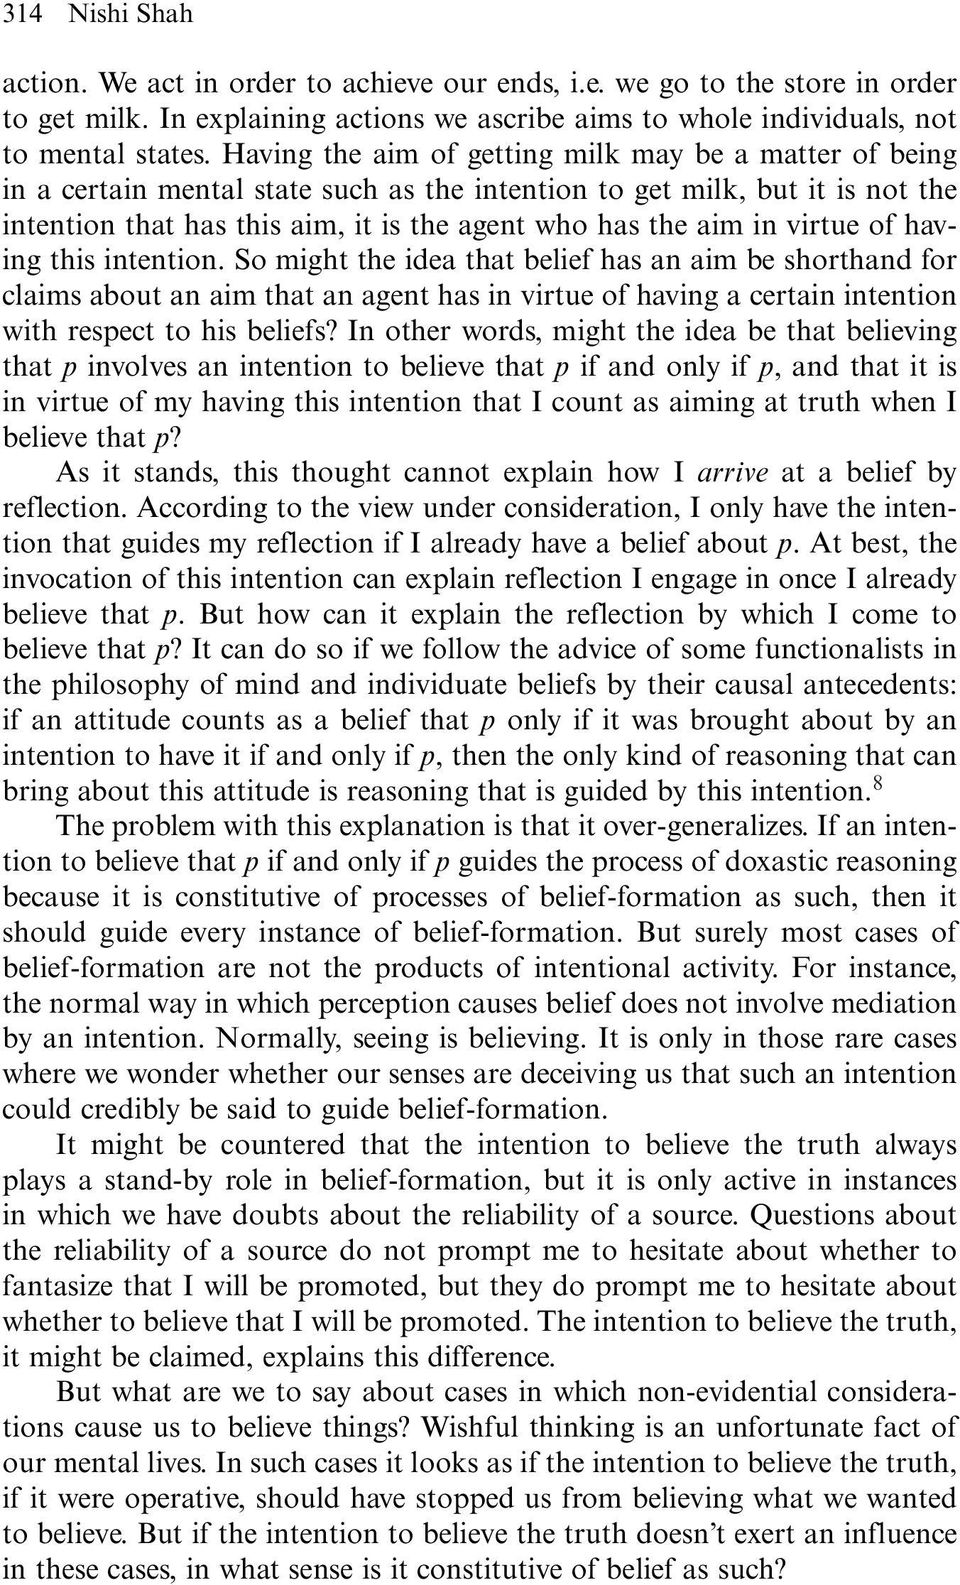 virtue of having this intention. So might the idea that belief has an aim be shorthand for claims about an aim that an agent has in virtue of having a certain intention with respect to his beliefs?